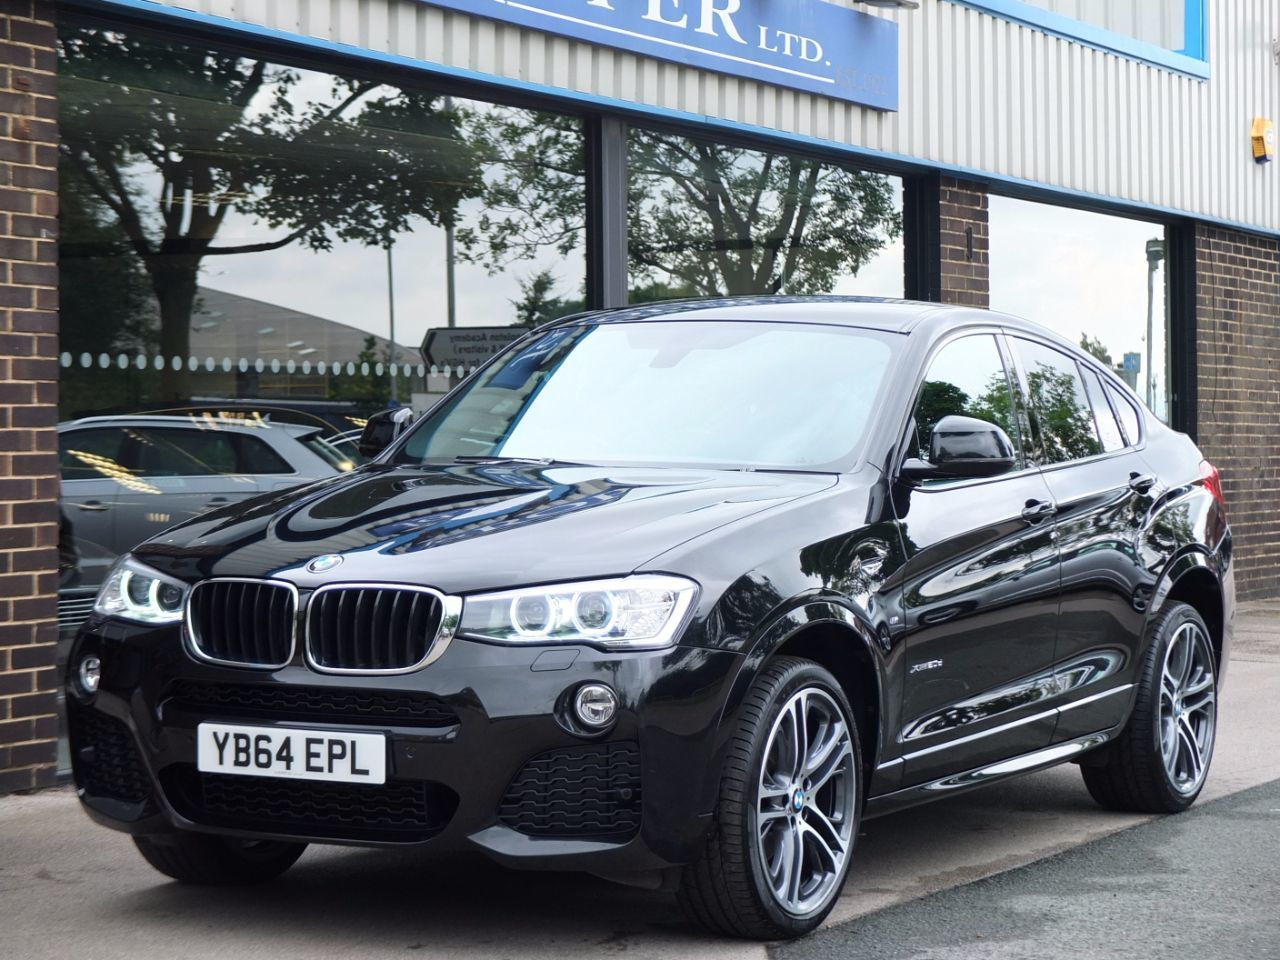 BMW X4 2.0 xDrive20d M Sport Plus Auto Coupe Diesel Black Sapphire MetallicBMW X4 2.0 xDrive20d M Sport Plus Auto Coupe Diesel Black Sapphire Metallic at fa Roper Ltd Bradford